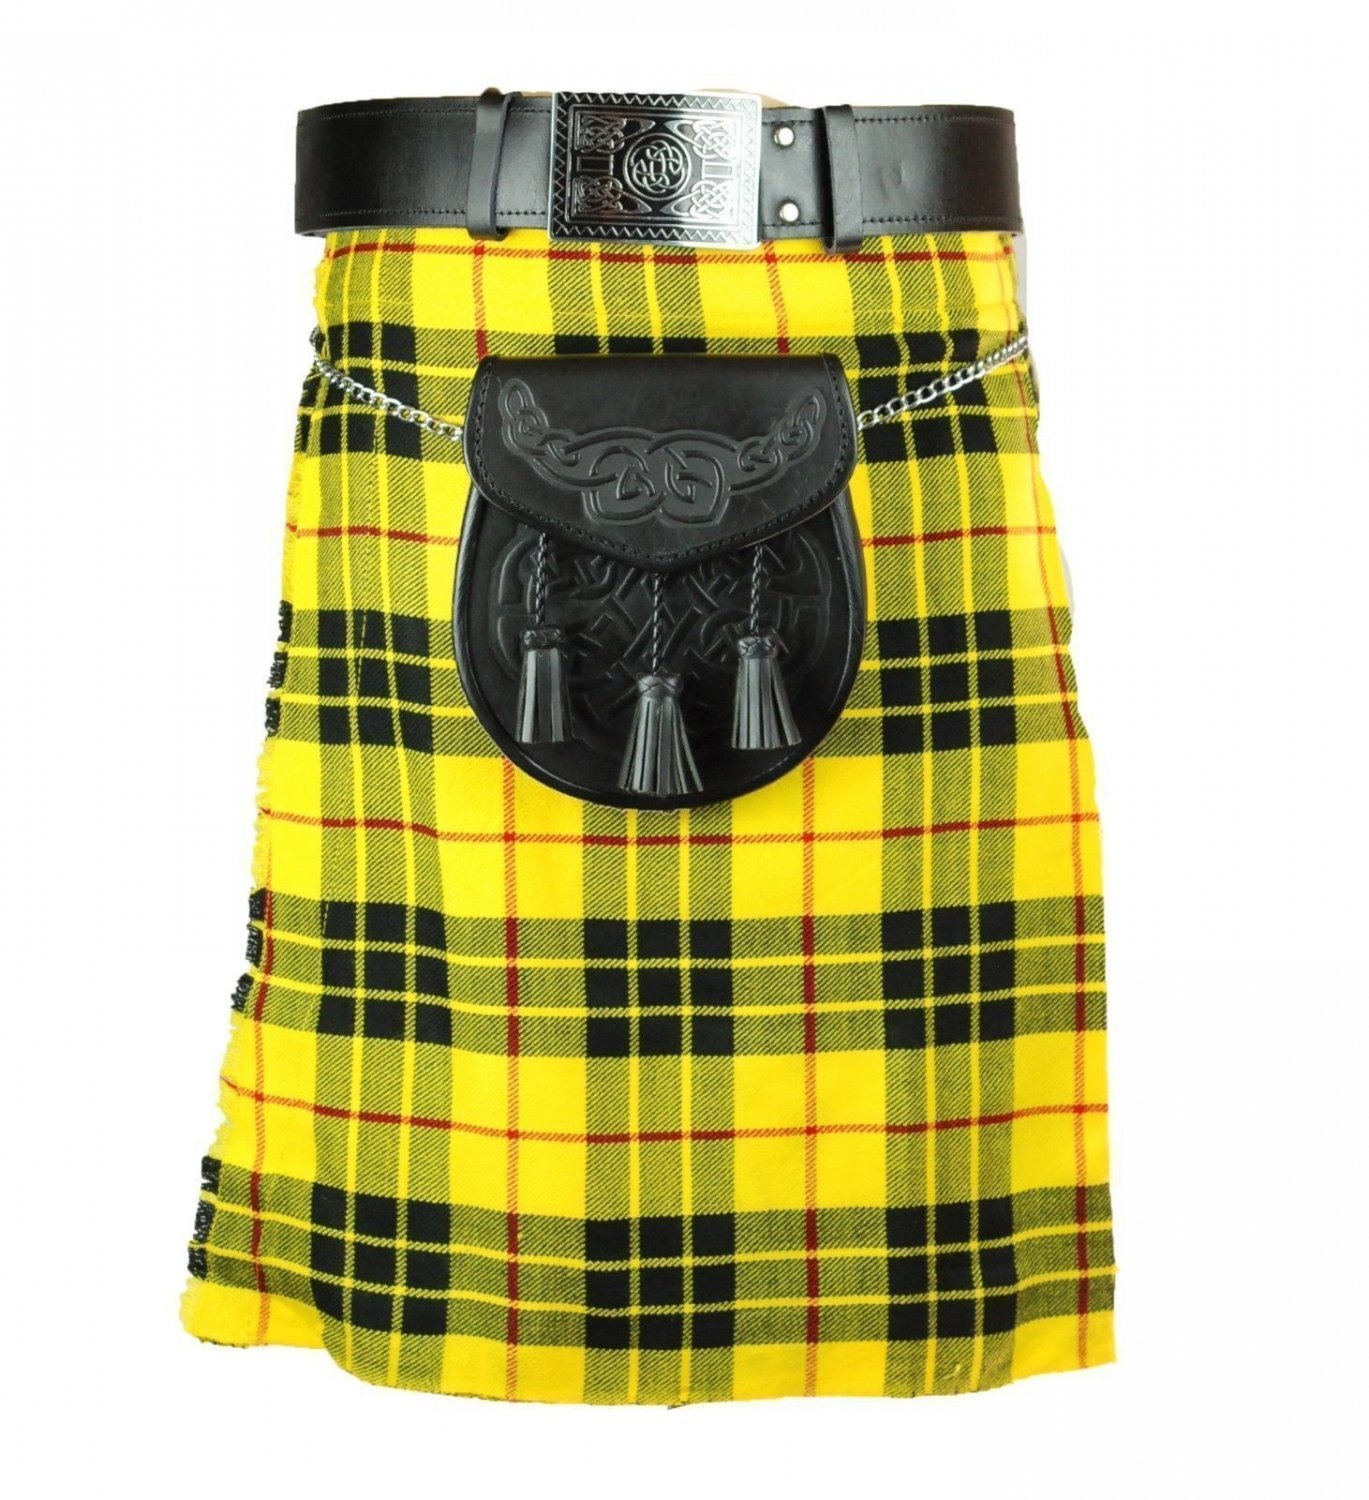 Deluxe Scottish Highland Utility Sports, Traditional Macleod of Lewis Tartan Kilts to Set 44Size